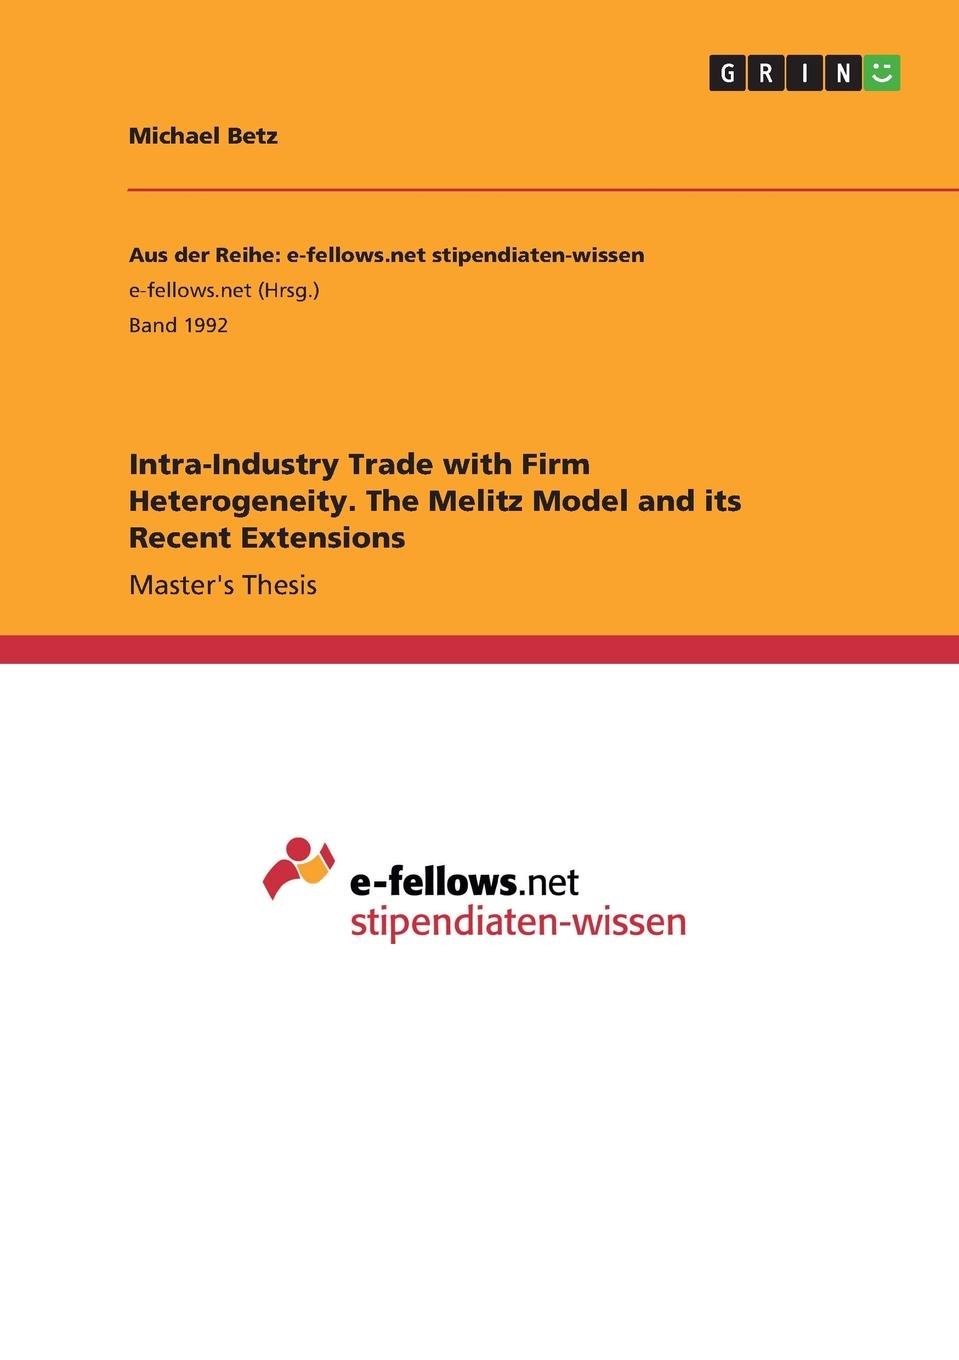 Michael Betz Intra-Industry Trade with Firm Heterogeneity. The Melitz Model and its Recent Extensions vishaal kishore ricardo s gauntlet economic fiction and the flawed case for free trade